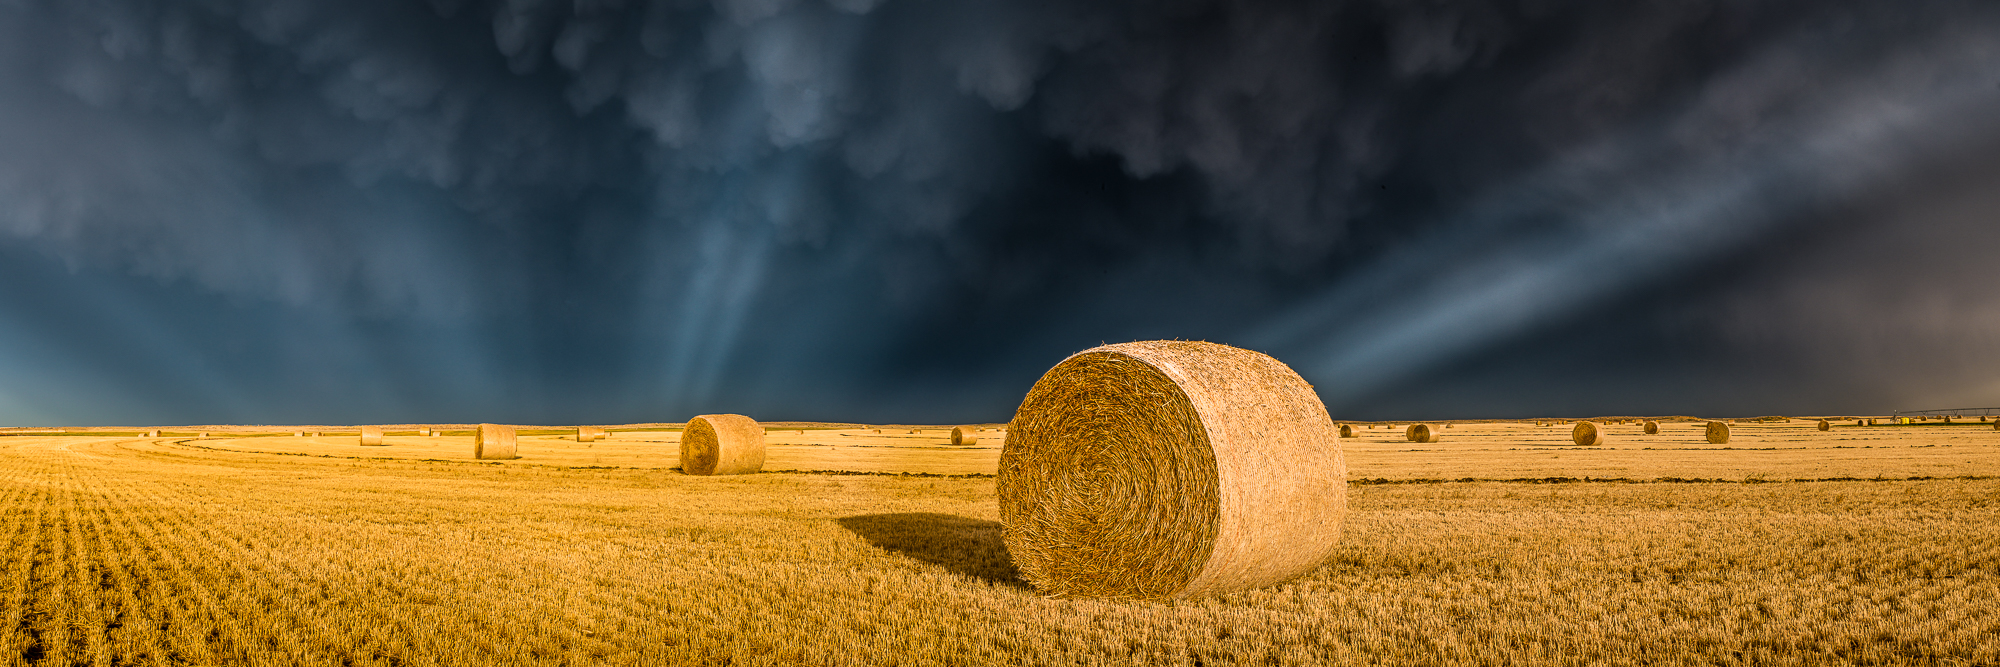 Crepuscular rays shine underneath strong mammatus cloud formations over a hay field on the Kansas prairie.